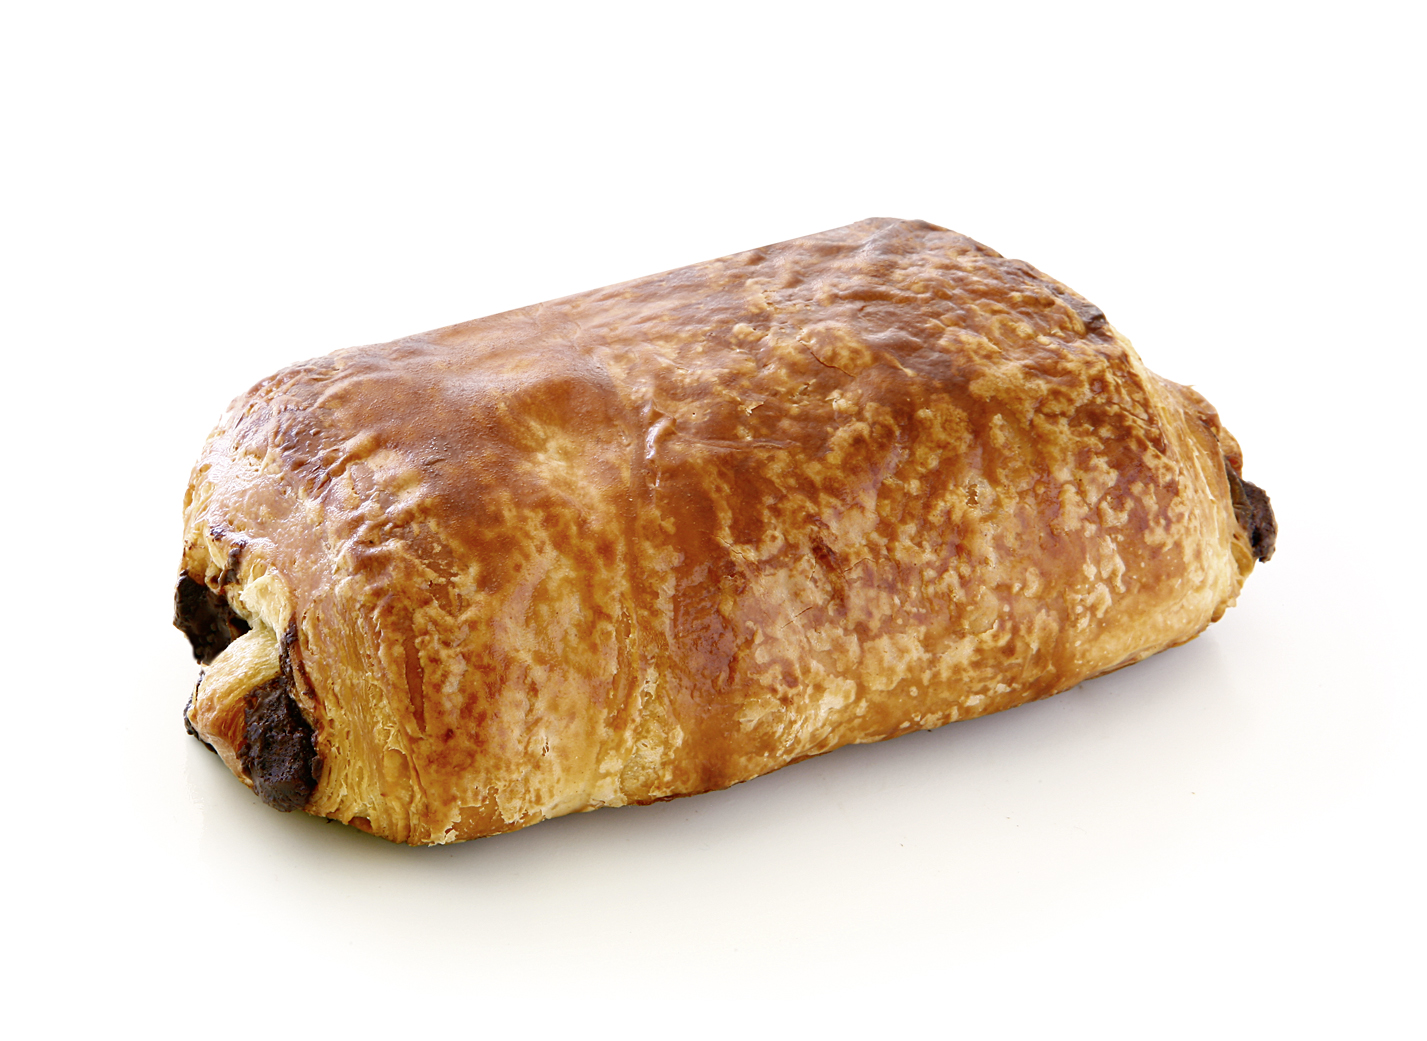 Butter-Chocolate Roll - Puff pastry with 22% butter/ filled with 12% original Belgium chocolate